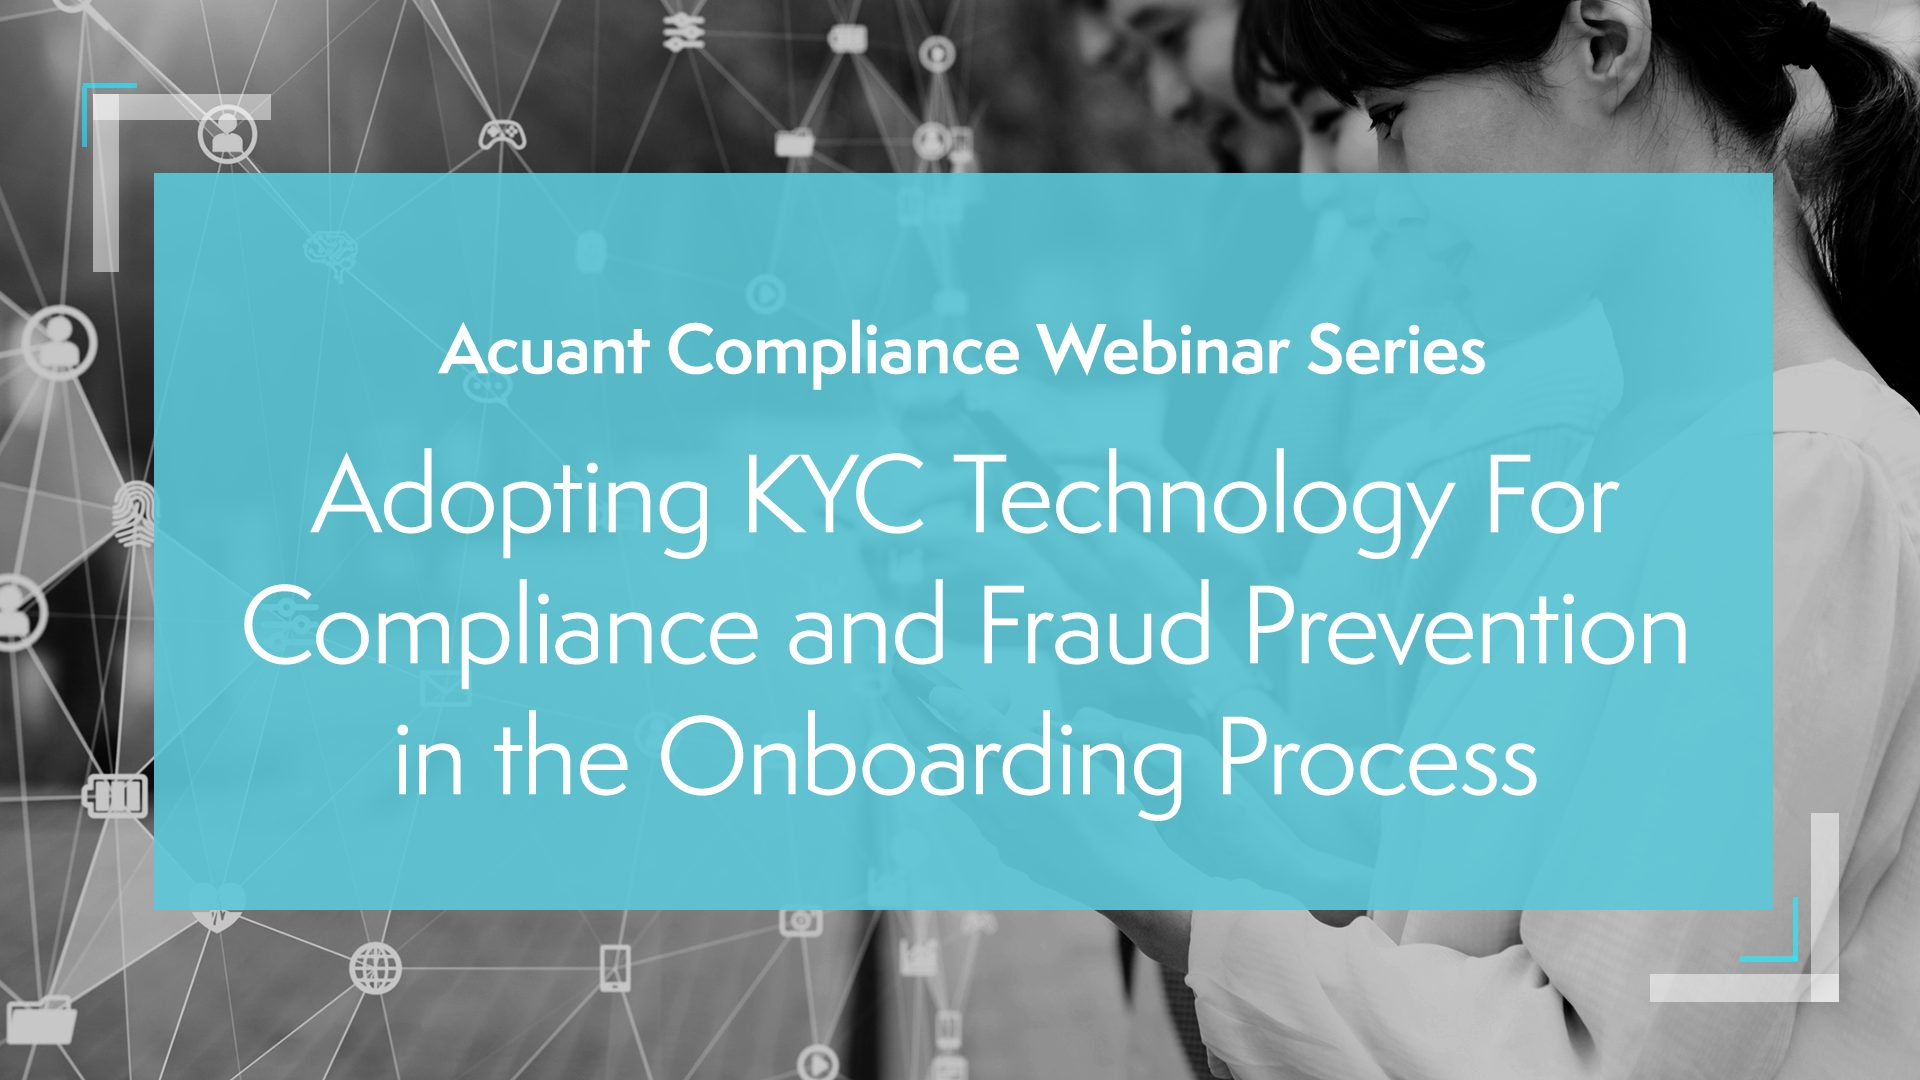 Webinar: Adopting KYC Technology For Compliance and Fraud Prevention in the Onboarding Process